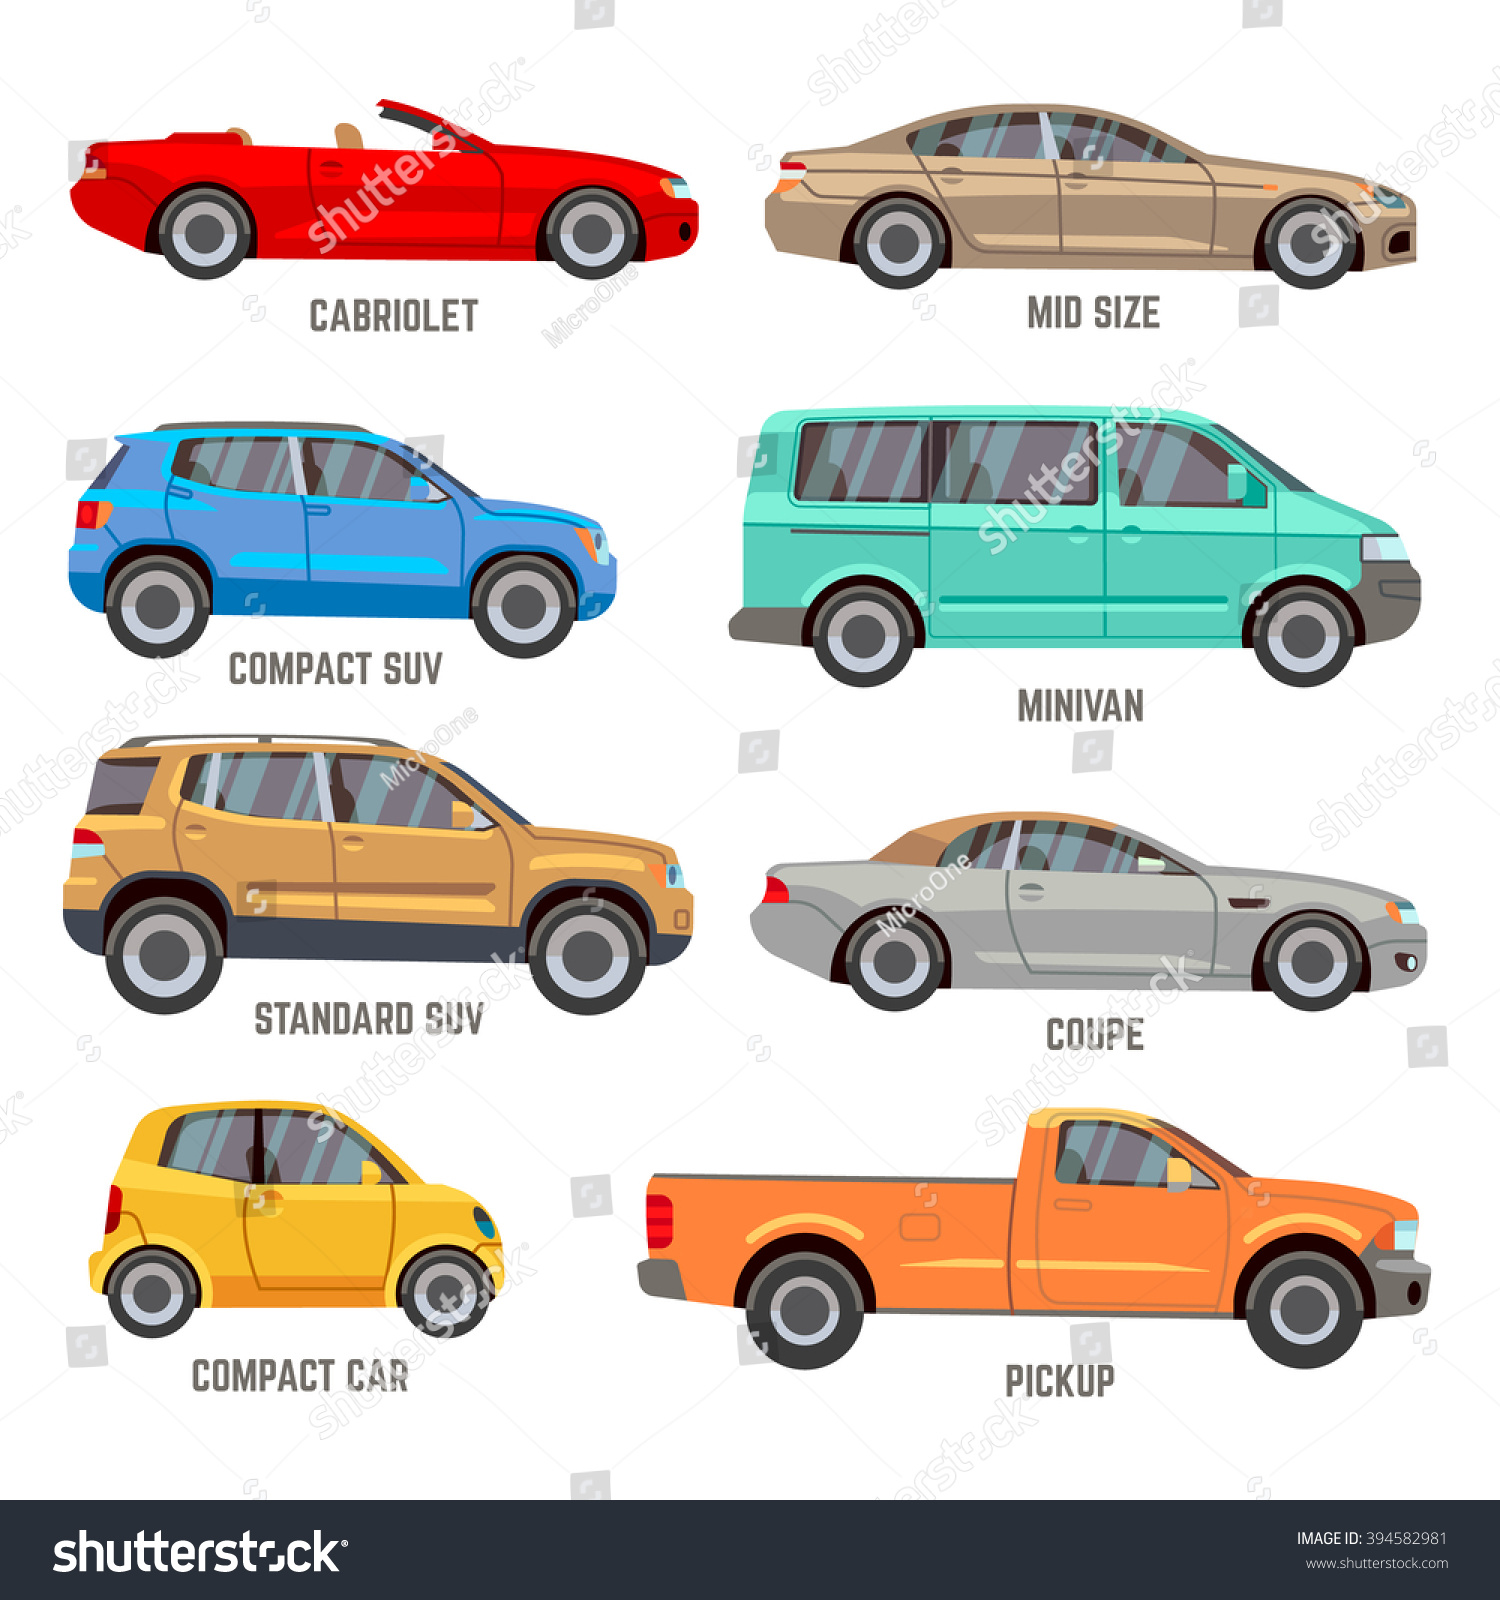 Car types vector flat icons Automobile models icons set